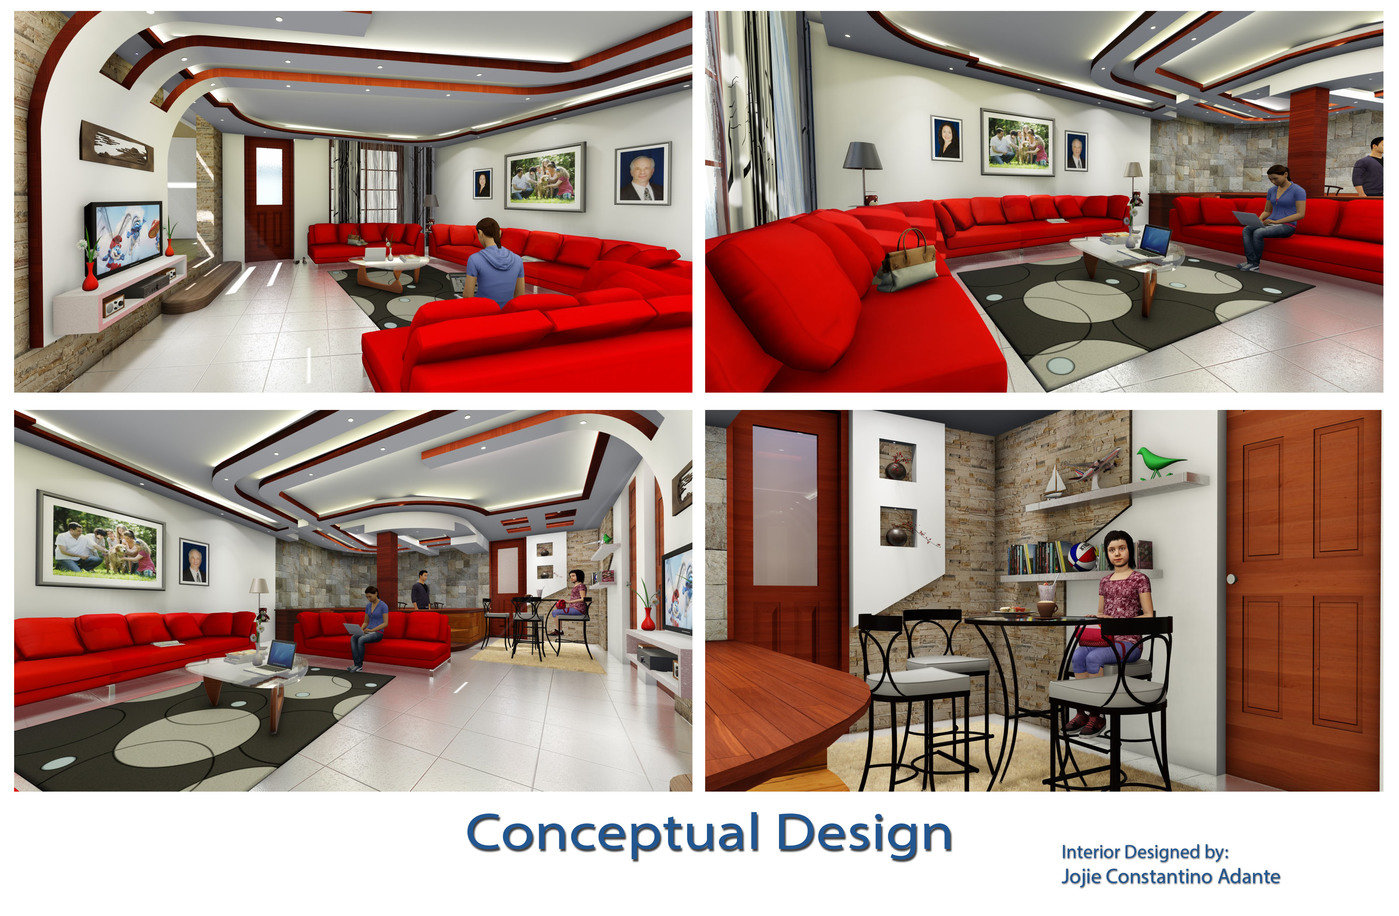 Interior Design 1 5 By Jojie Adante At Coroflot Com